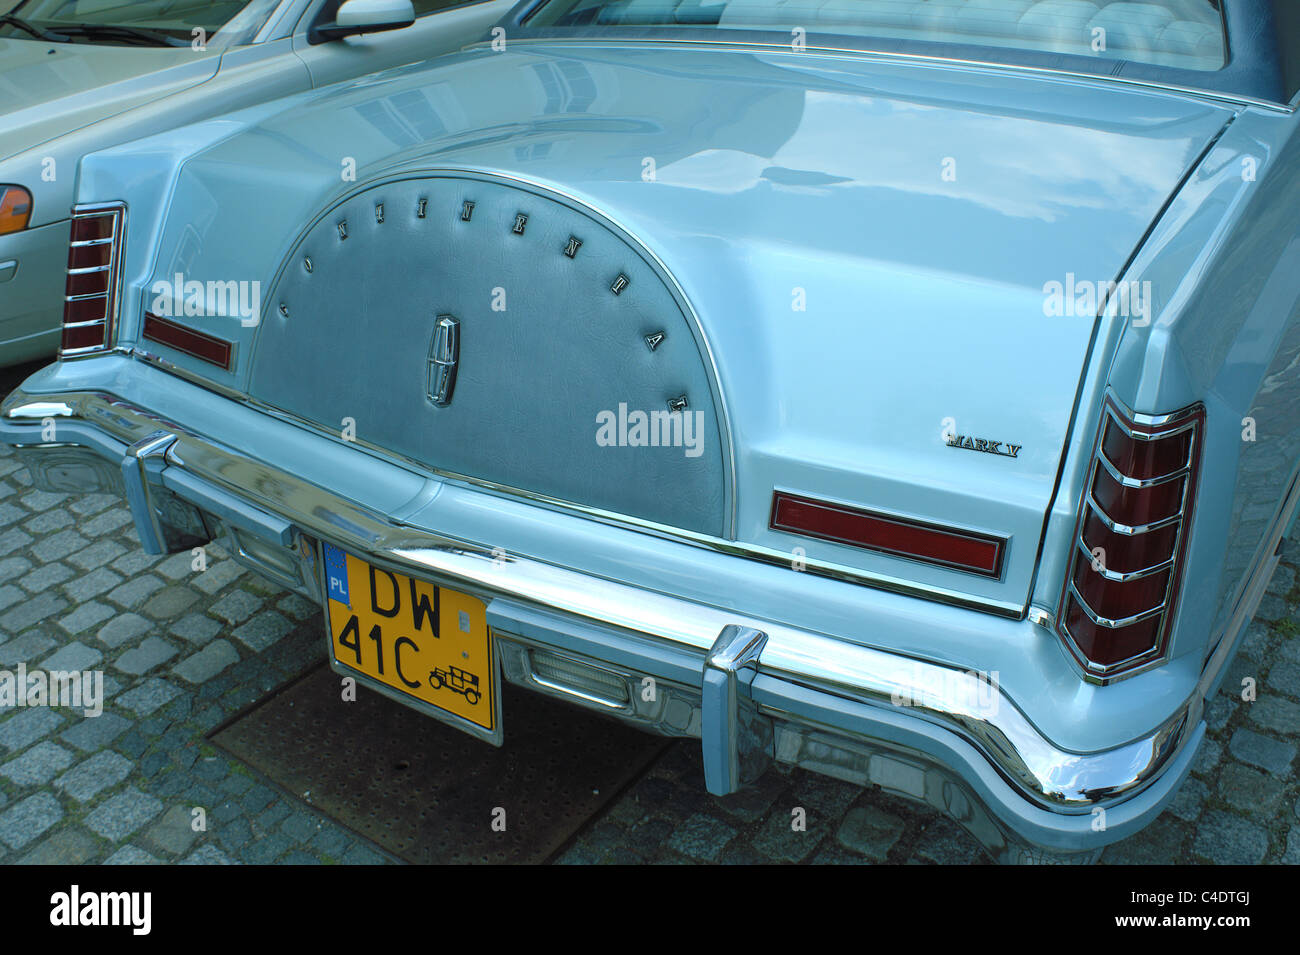 Lincoln Continental Mk V Vintage Luxury Car Stock Photo 37184018